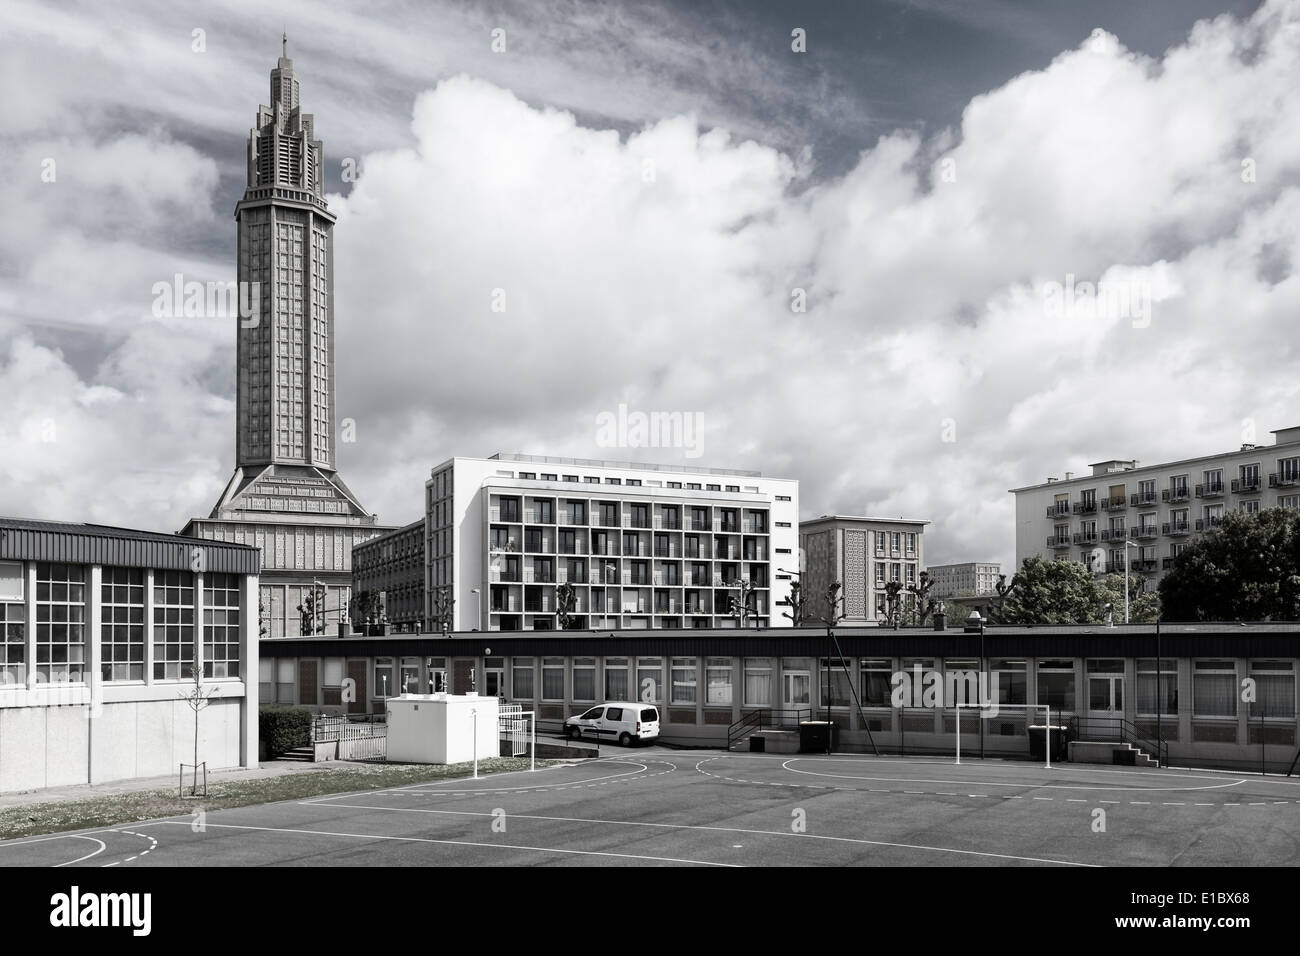 saint josephs church and other concrete buildings from the 1950s at stock photo royalty free. Black Bedroom Furniture Sets. Home Design Ideas